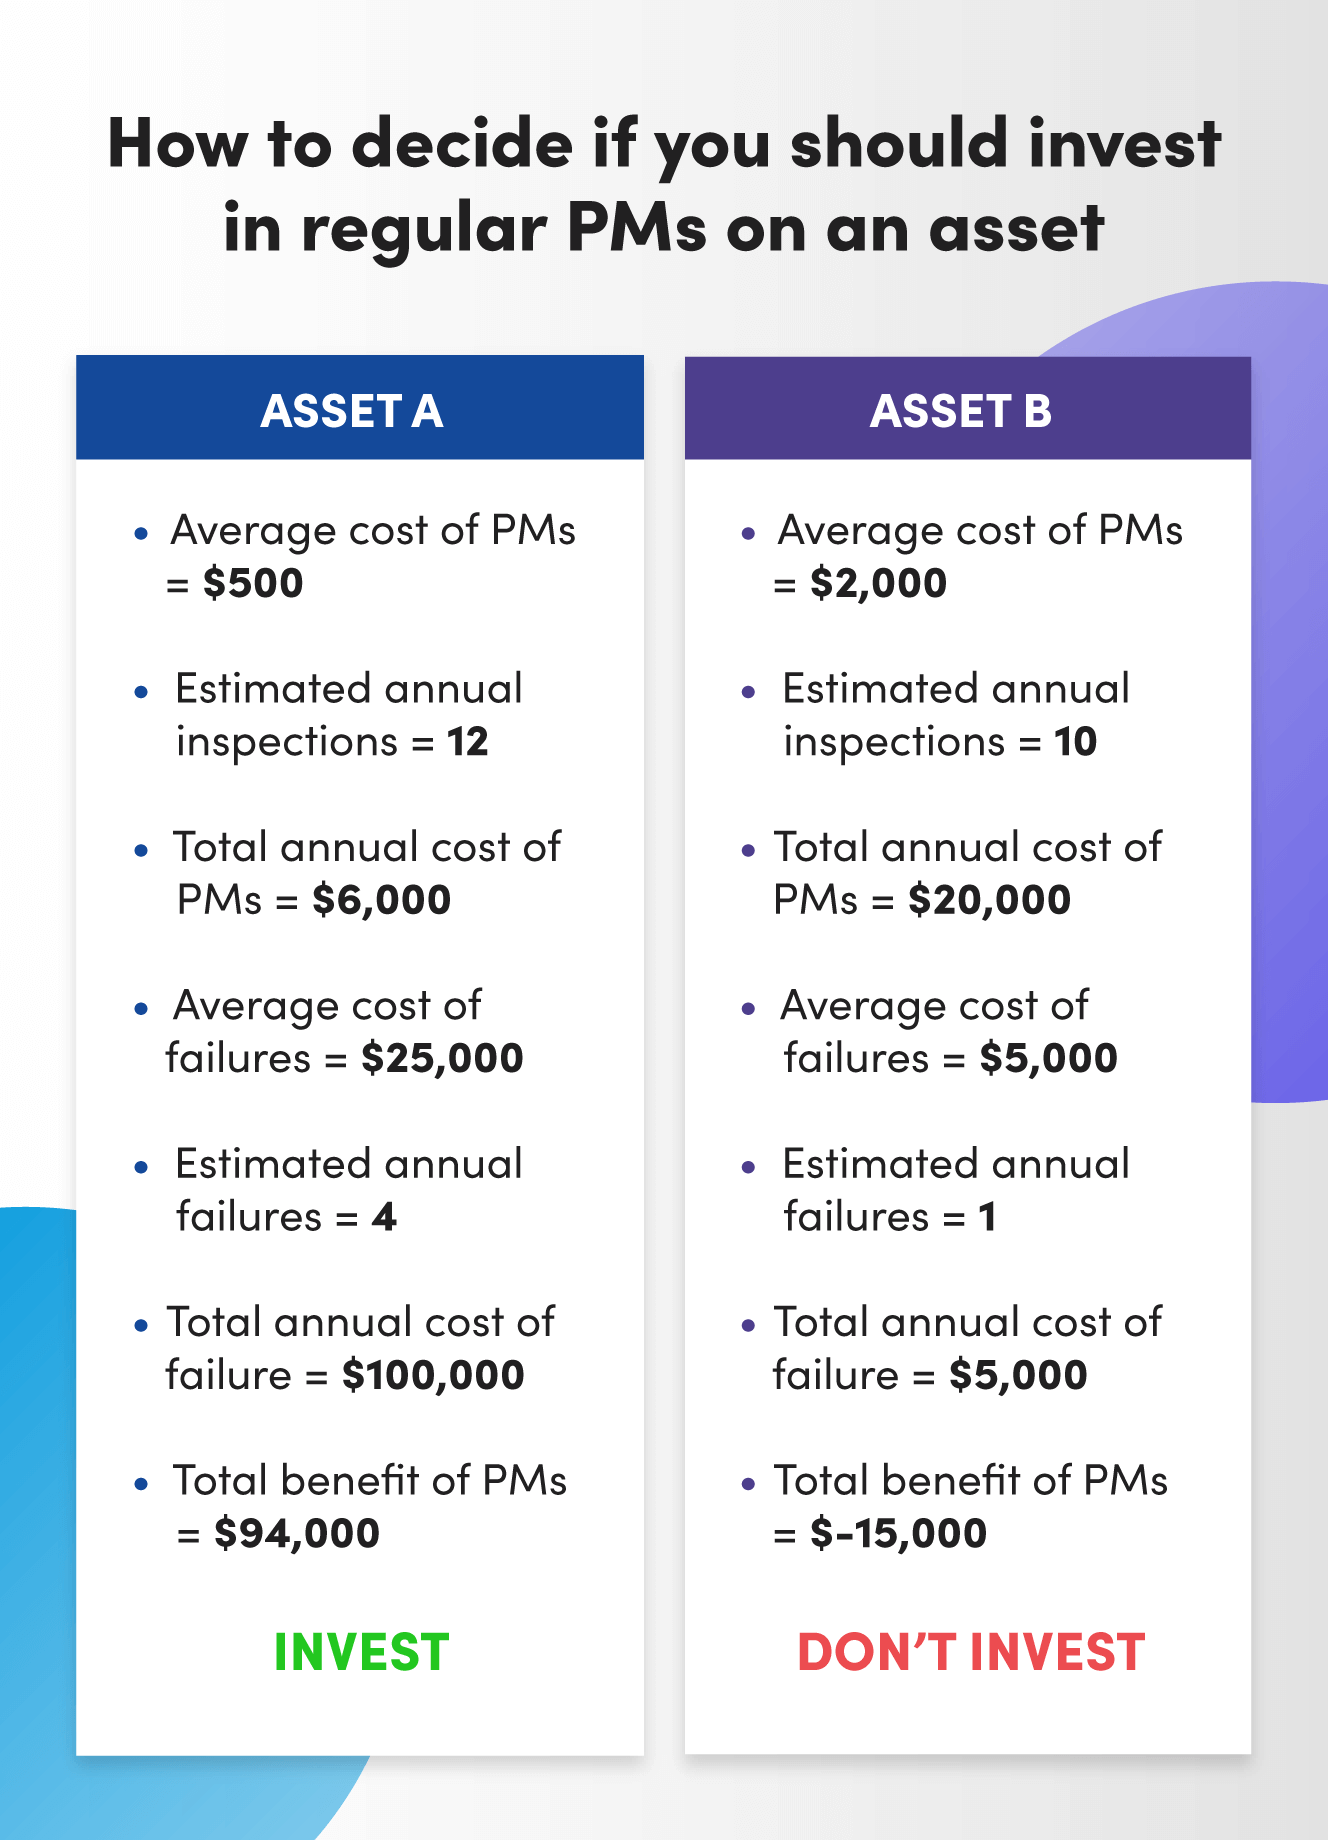 How to decide if you should invest in regular PMs on an asset